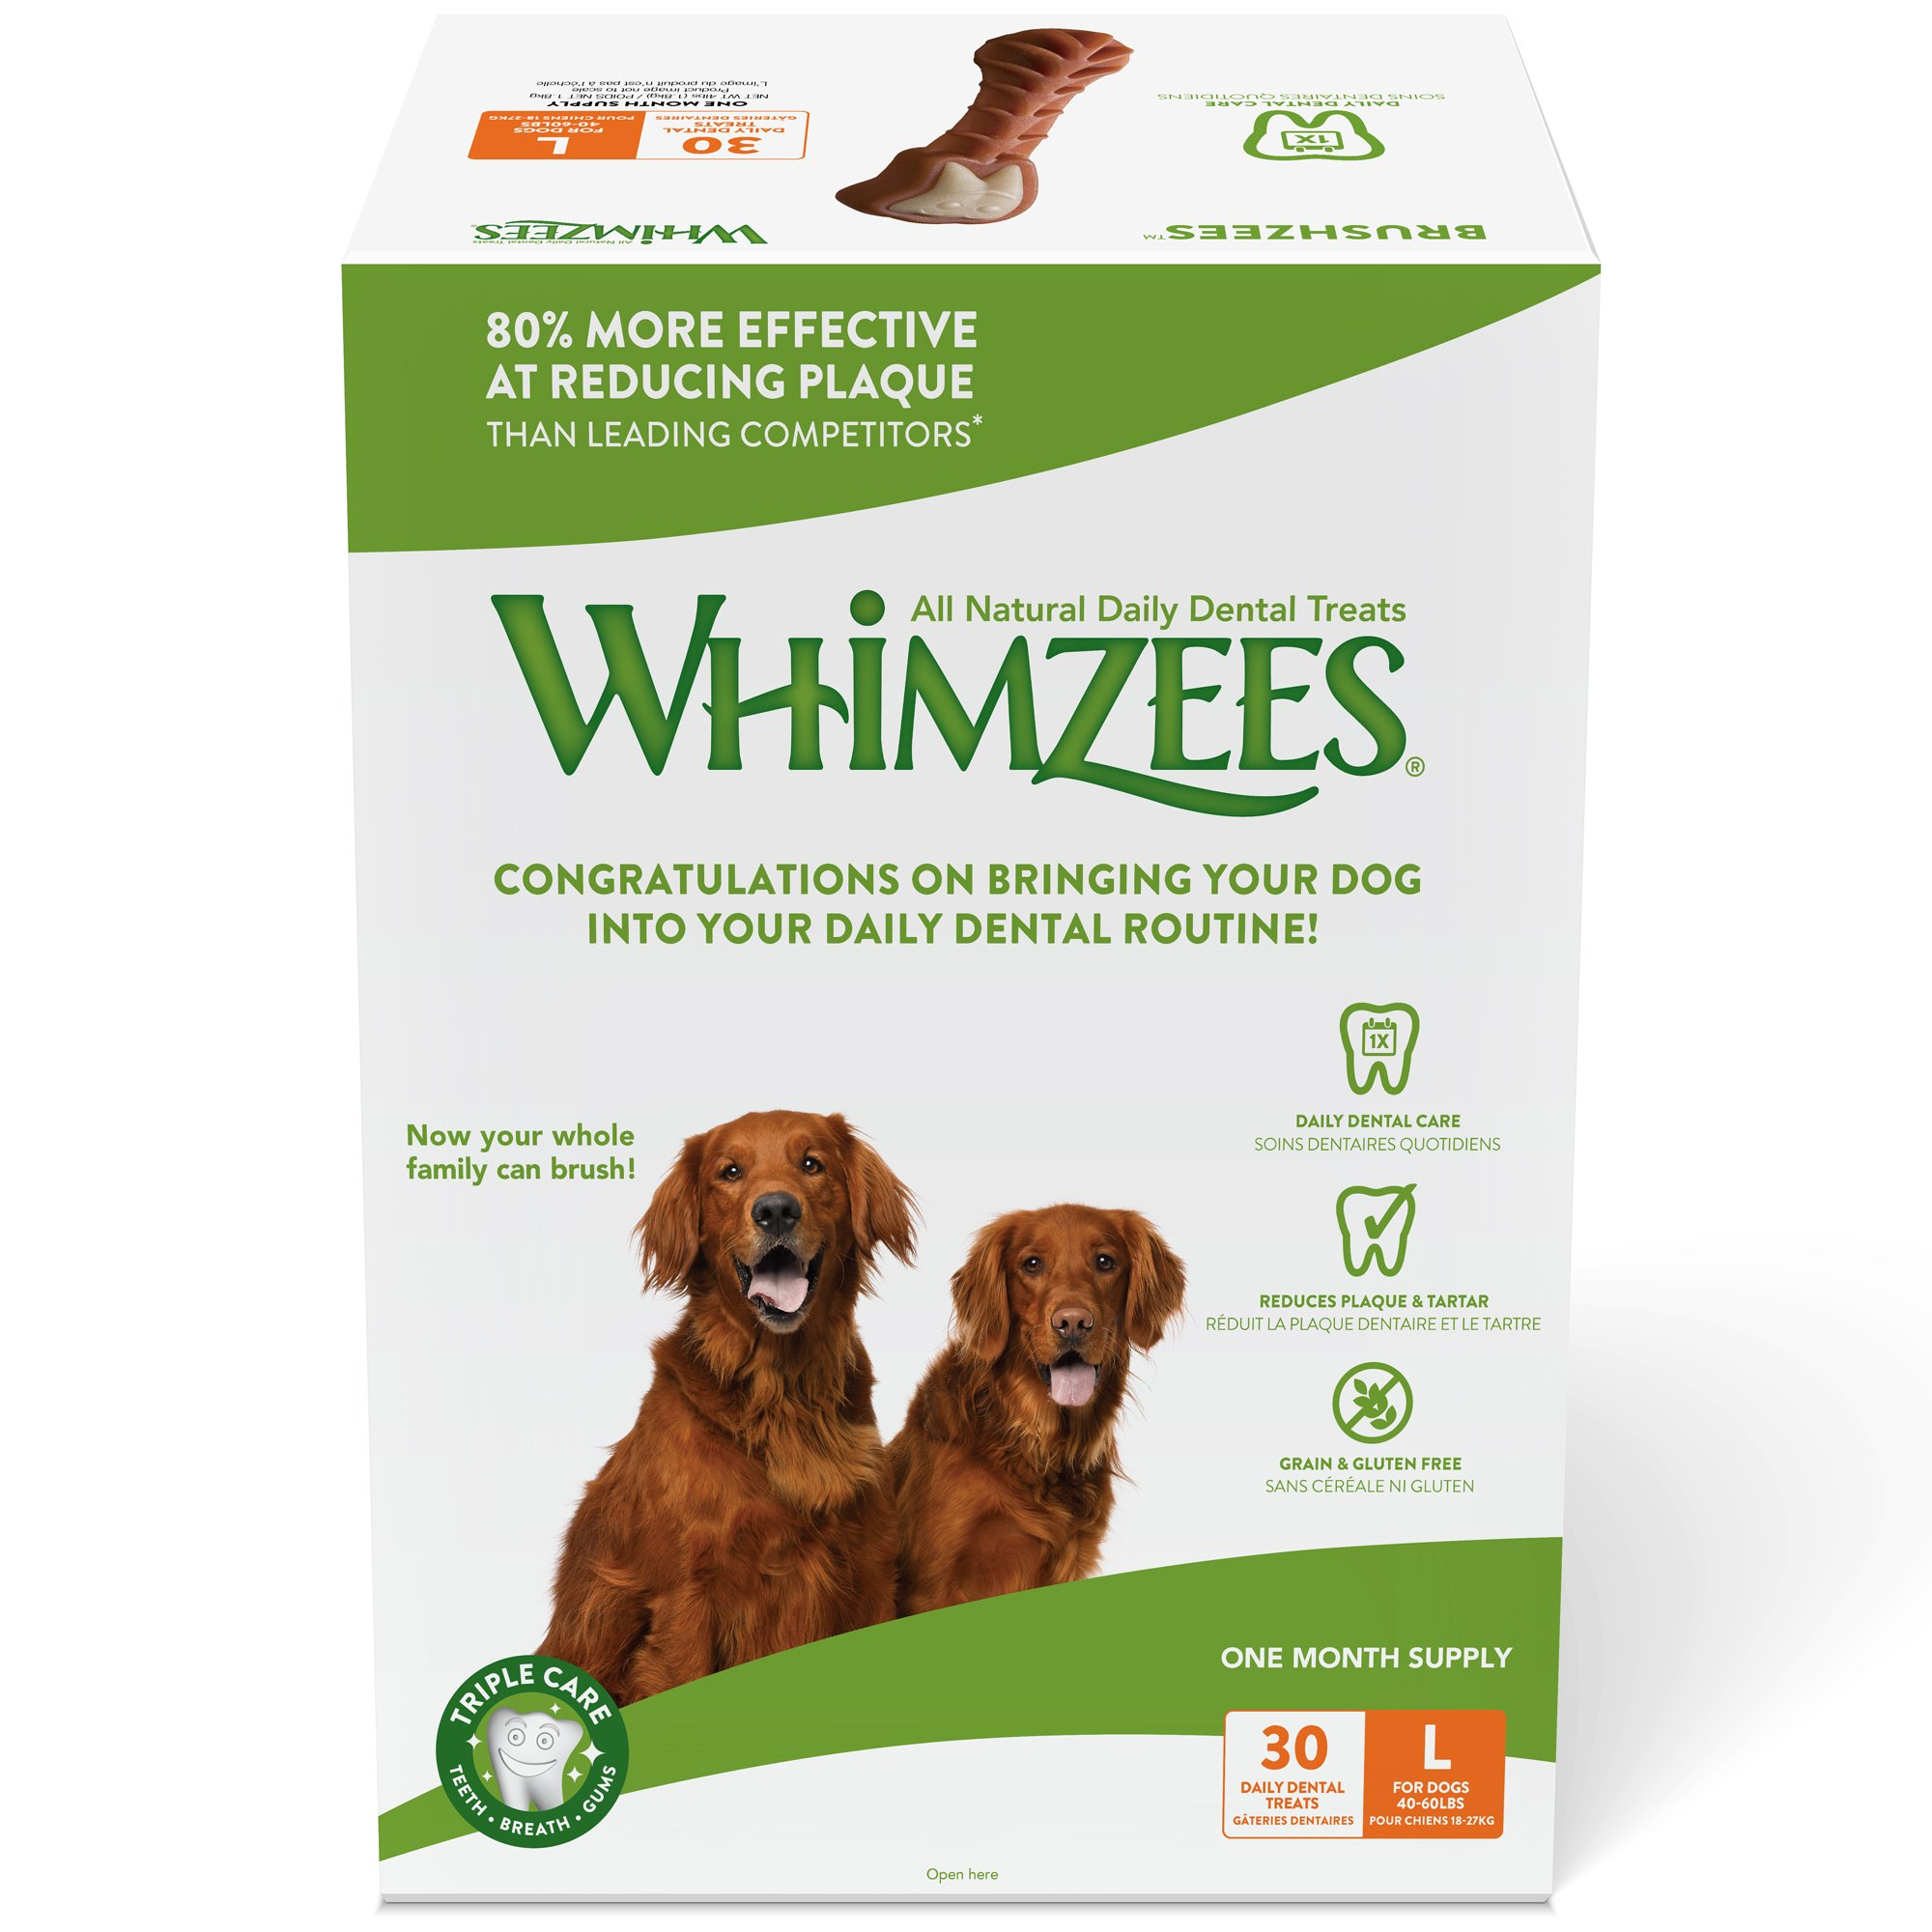 Whimzees 30 Day Pack Dog Dental Treats, Large Brushzees, Pack Of 30 by Whimzees